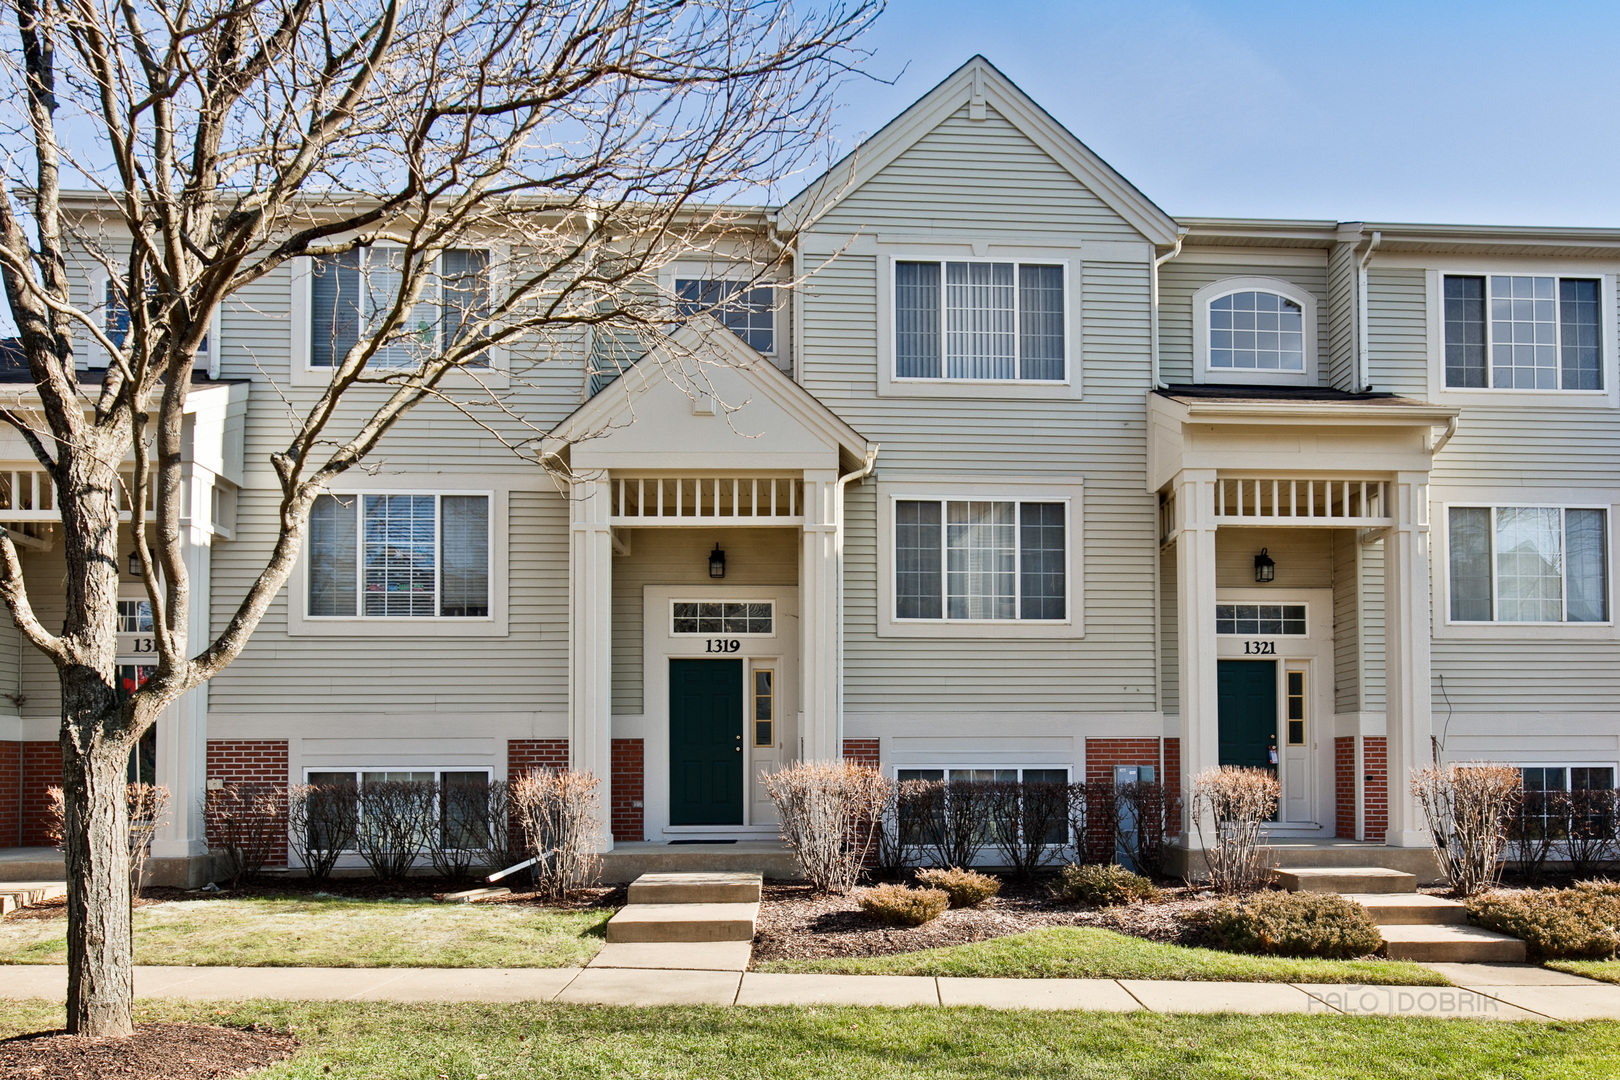 Photo for 1319 New Haven Drive, Cary, IL 60013 (MLS # 10599166)